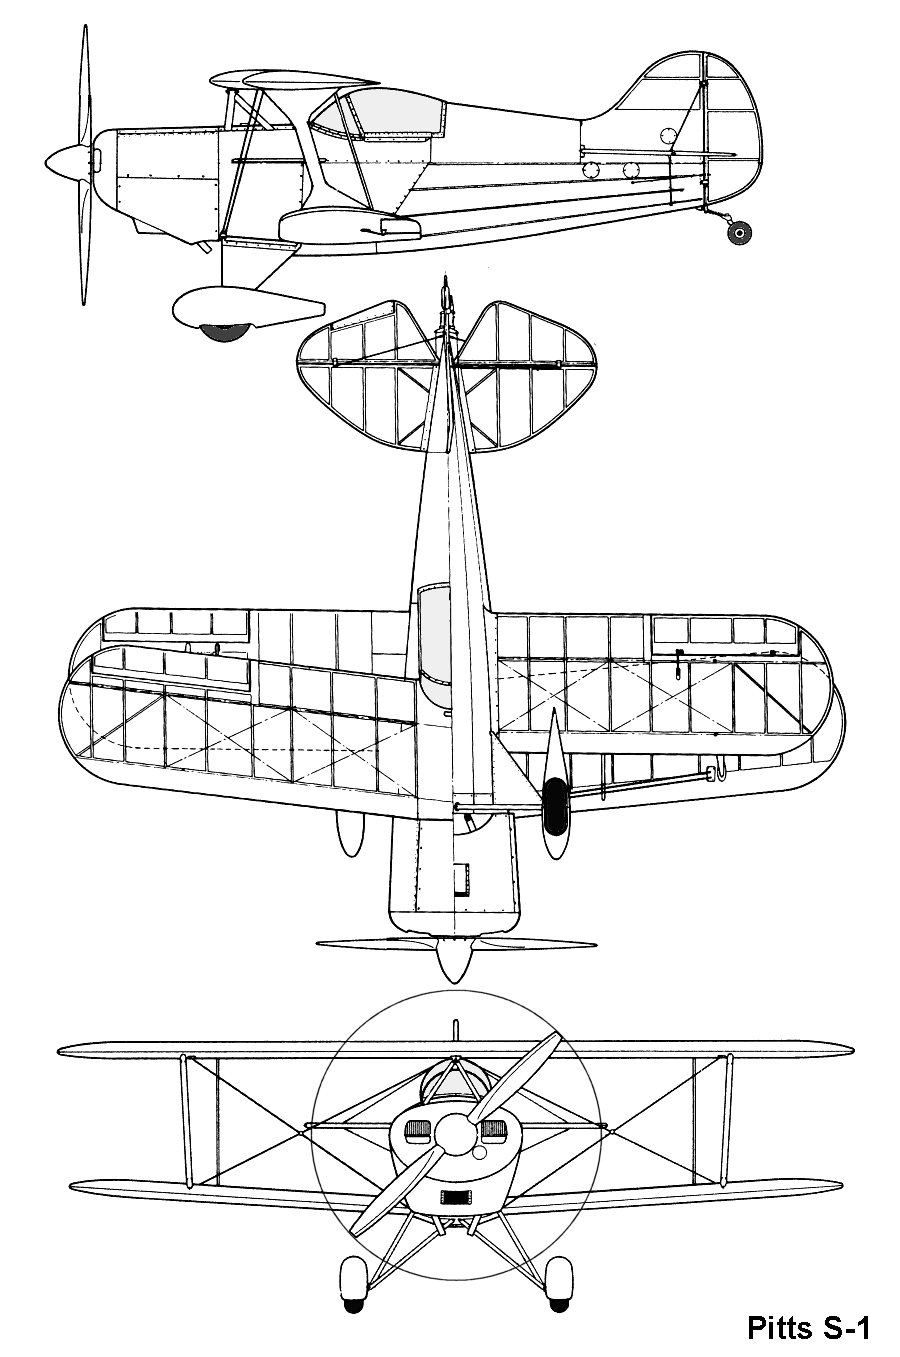 Pitts Special S-1